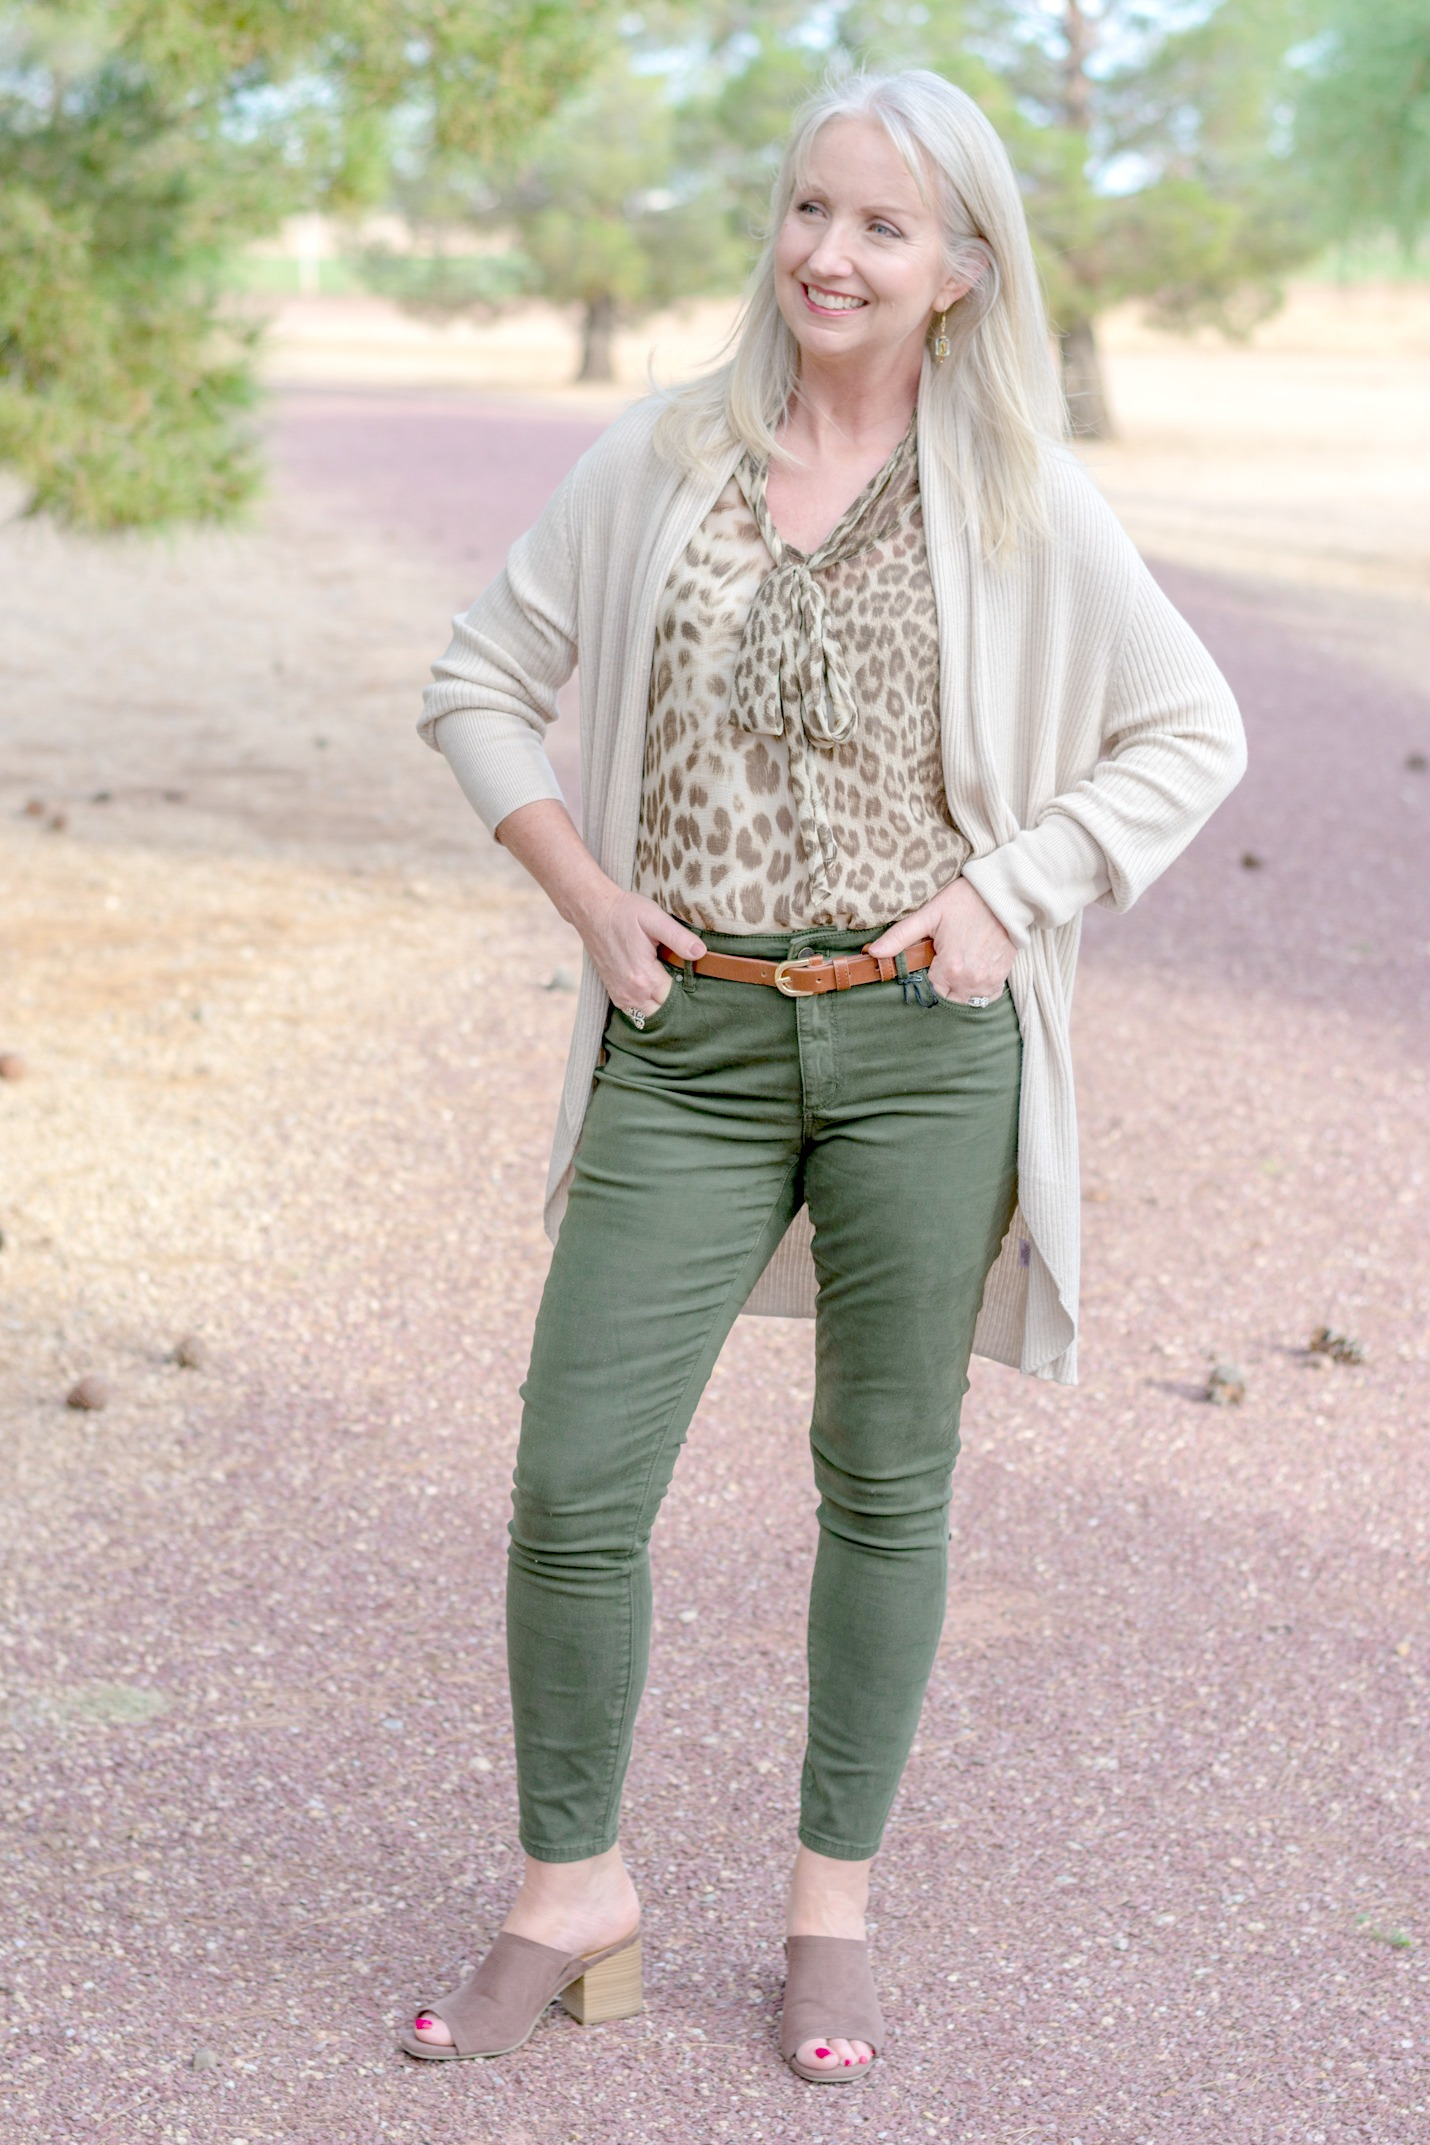 Colored Jeans and Leopard Print Blouse